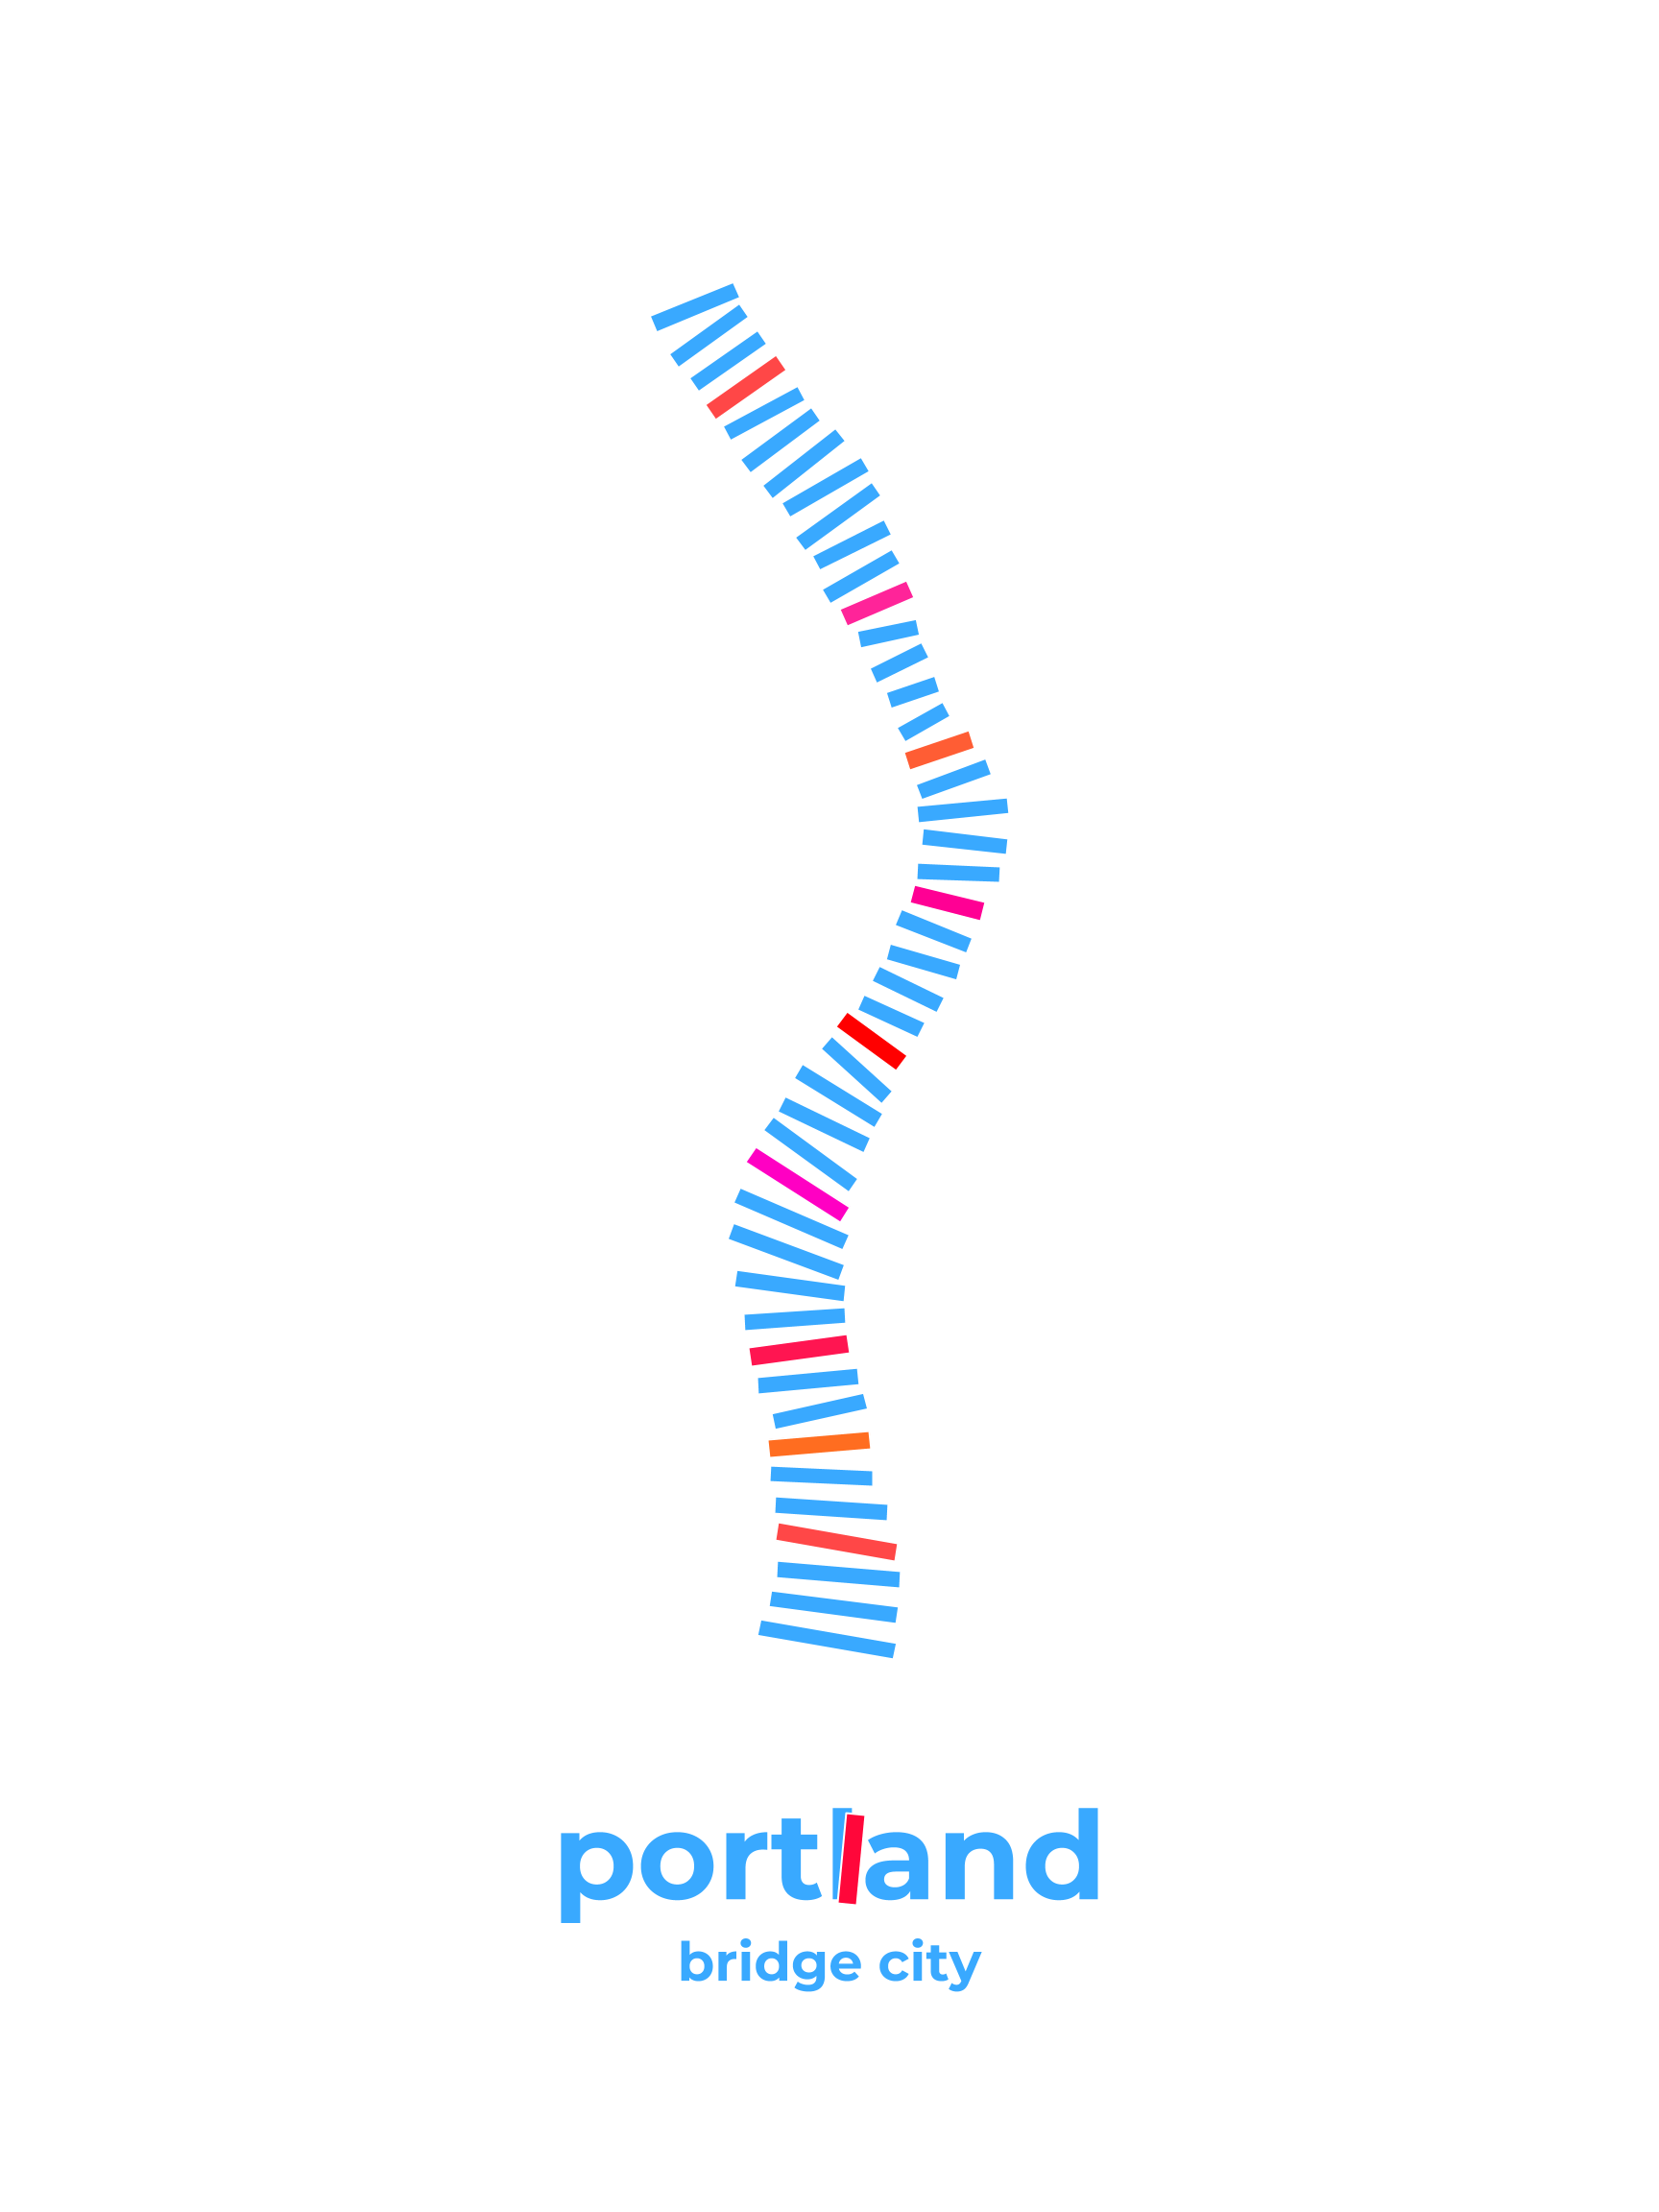 portlandbridges.png